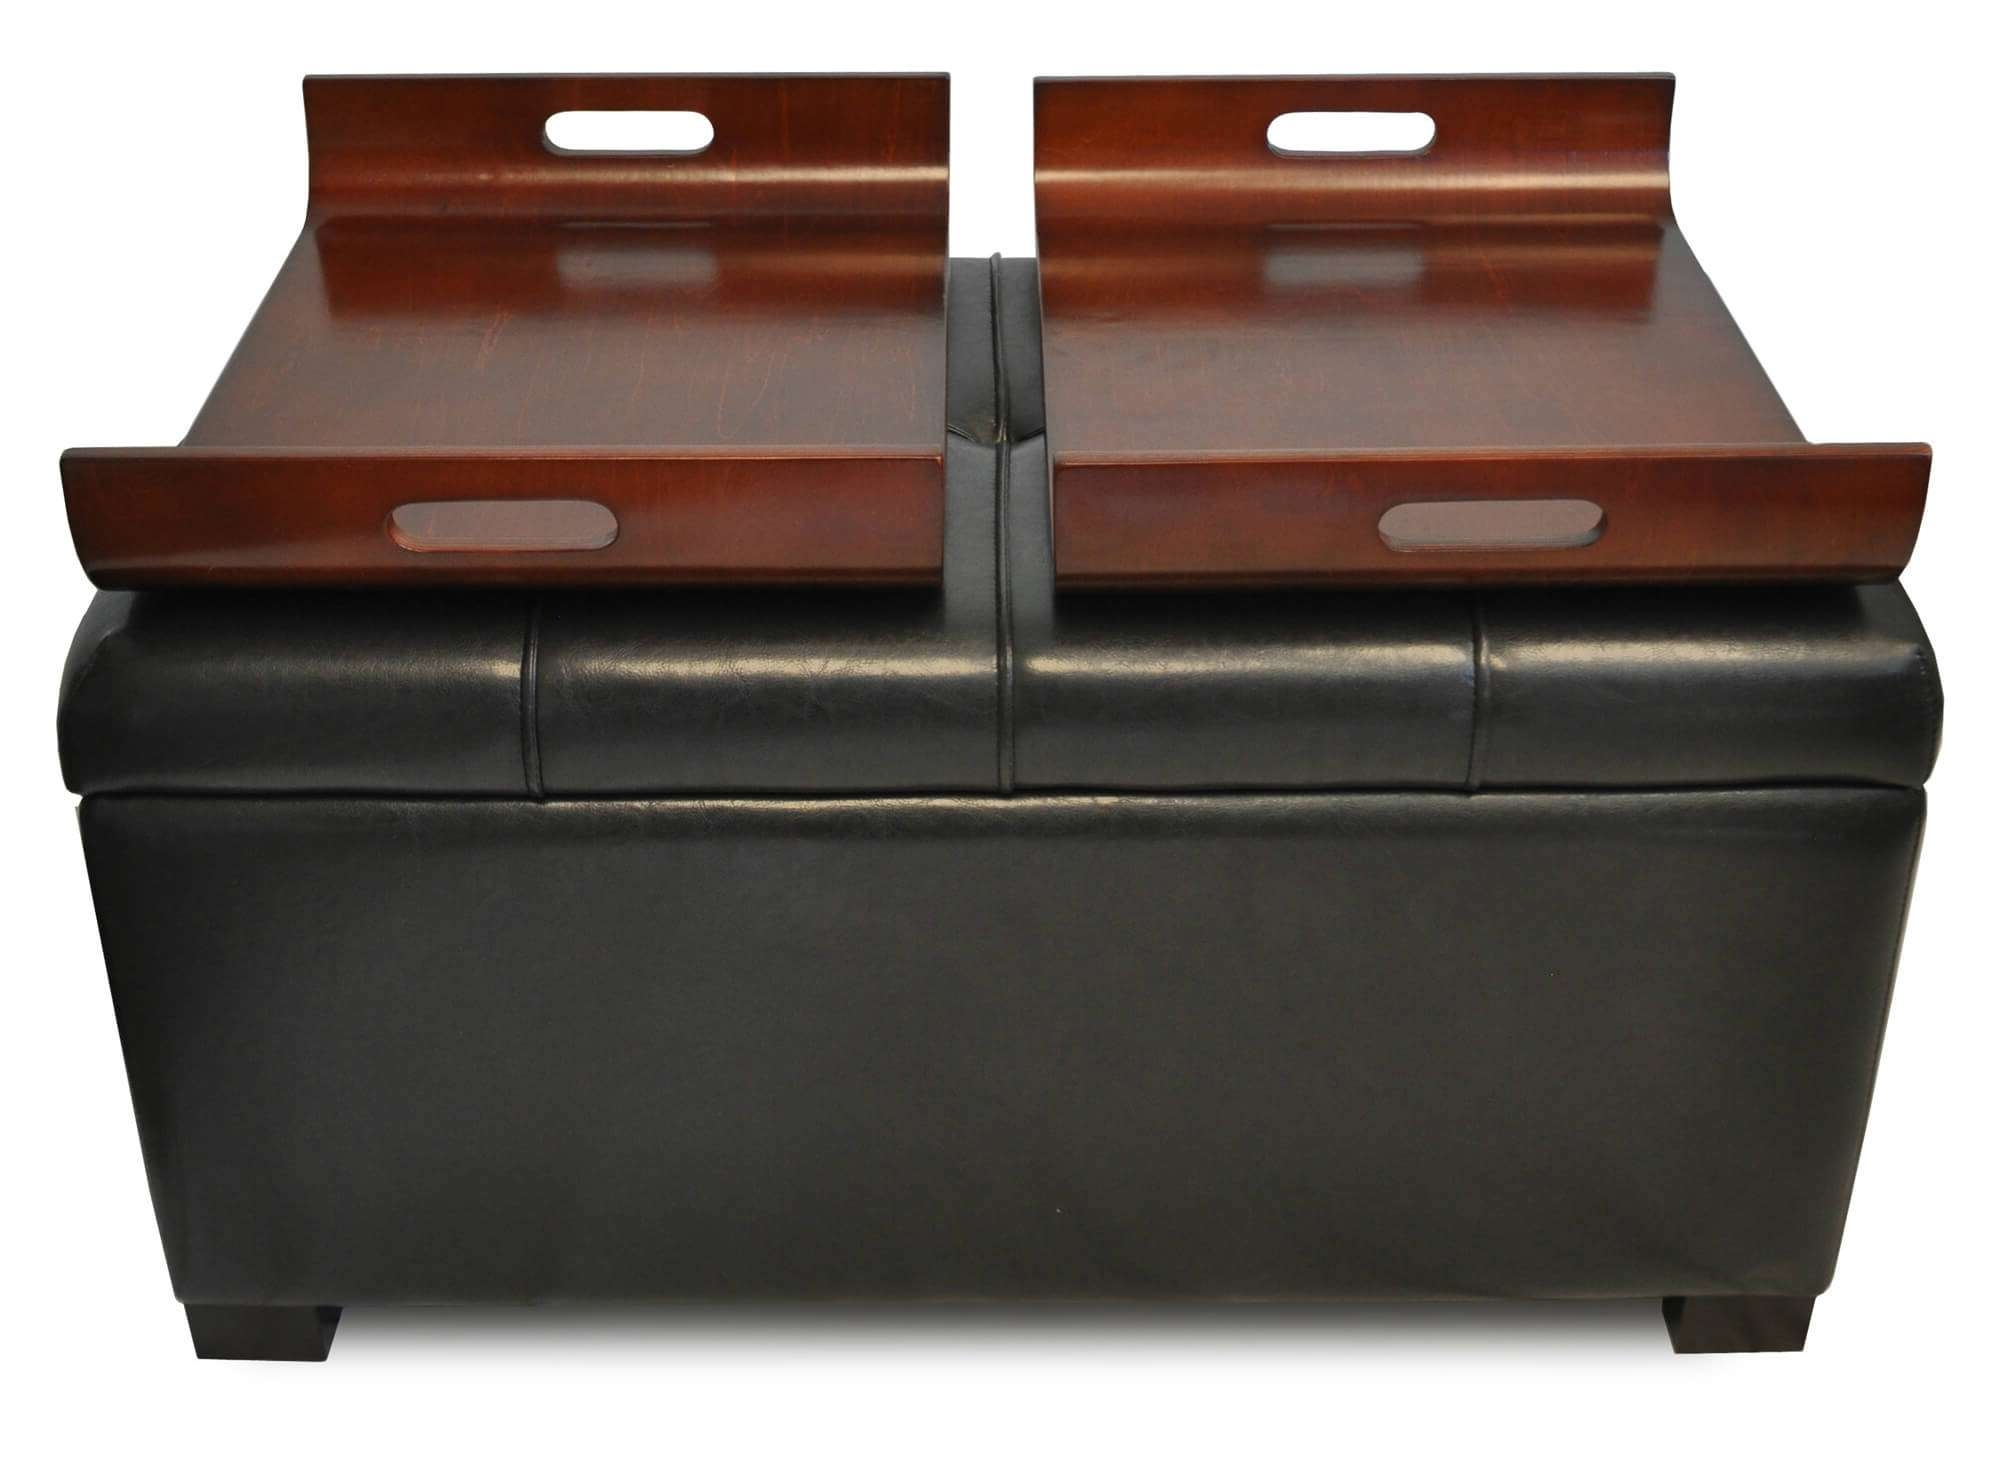 36 Top Brown Leather Ottoman Coffee Tables For Popular Brown Leather Ottoman Coffee Tables With Storages (Gallery 18 of 20)